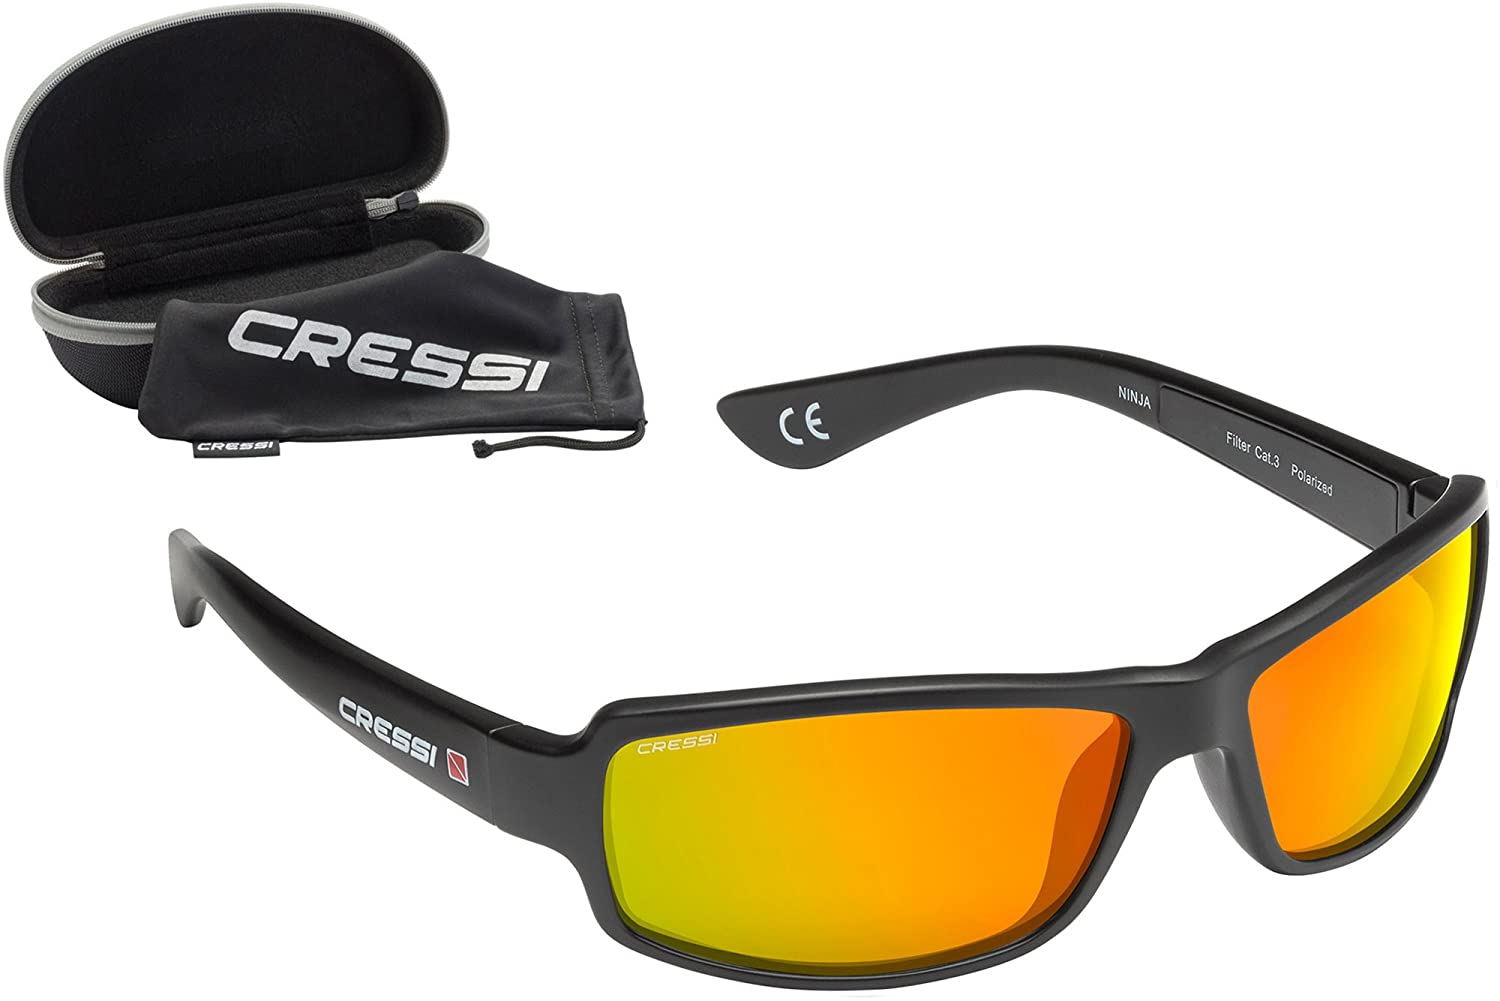 Cressi Sonnenbrillen Ninja Floating Blue with MIRORED Lens - Gafas de Ciclismo